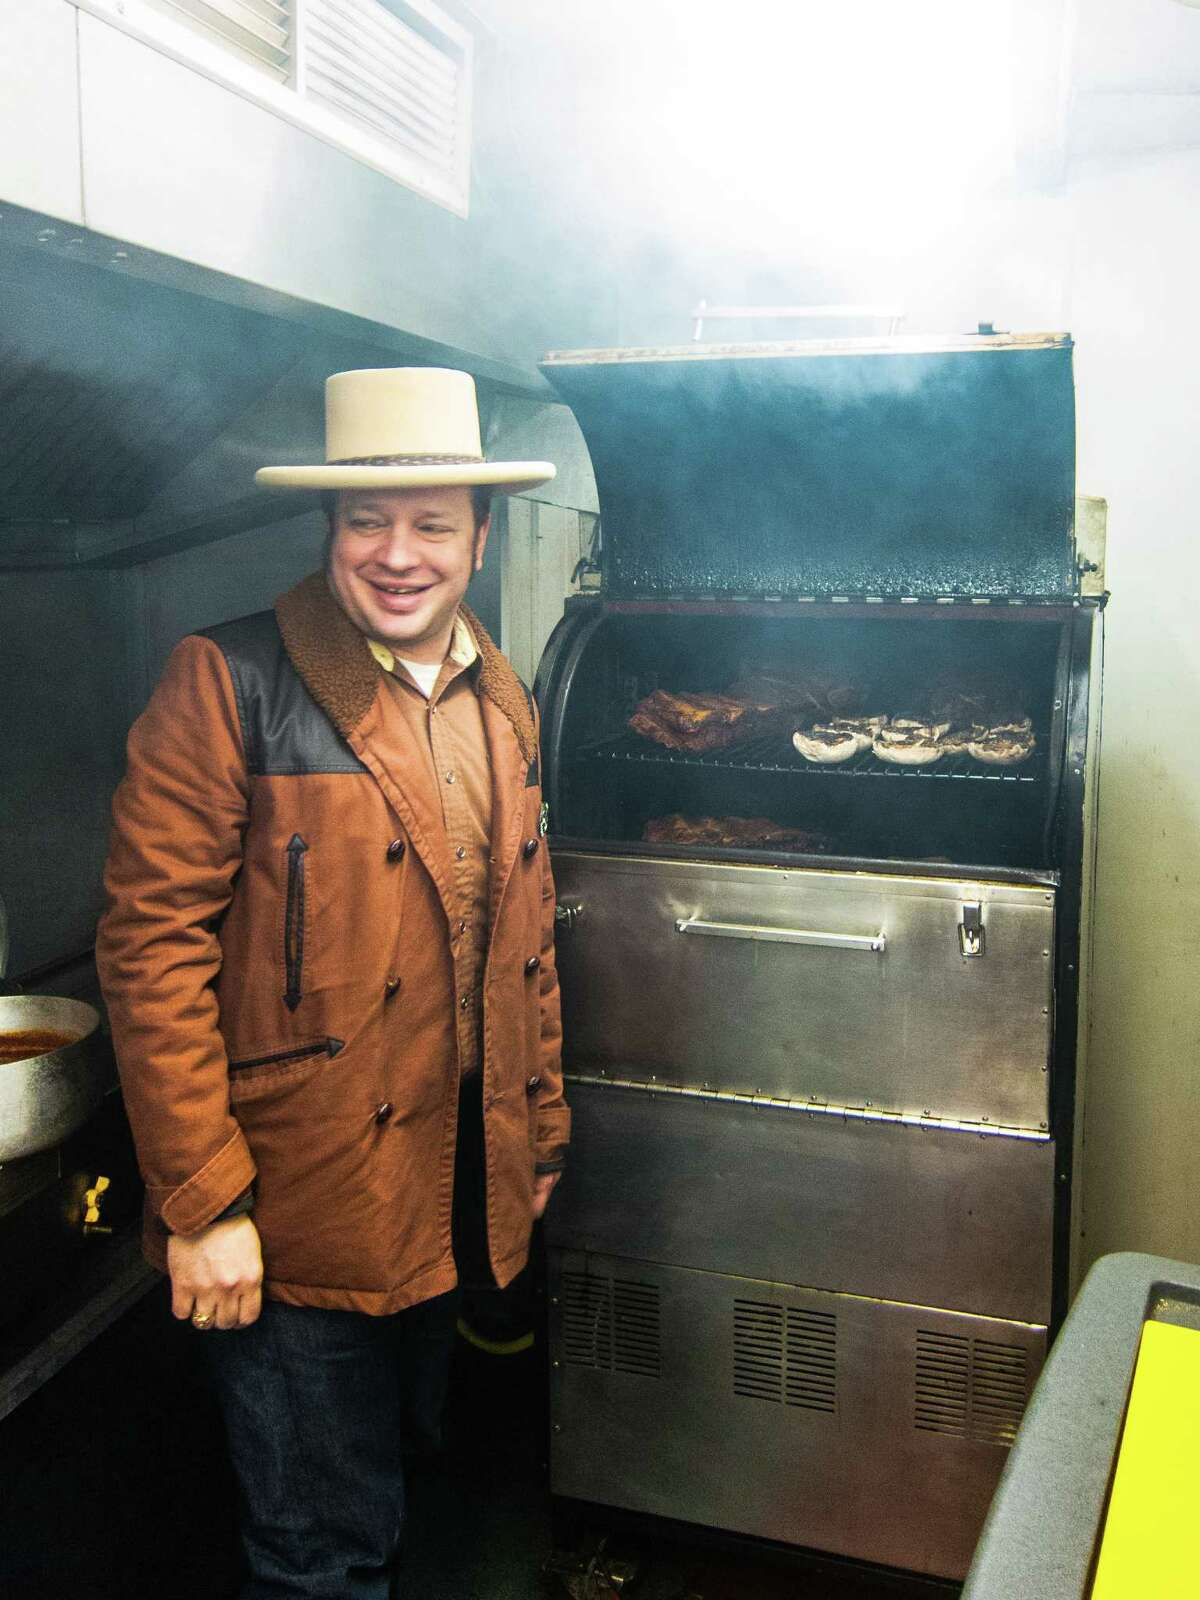 Ole Hickory smokers mean something to pitmasters in Europe too. Joe Walters tends his Ole Hickory pit at Texas Joe's Slow Smoked Meats in London, England. Texas Joe's Slow Smoked Meats, BrewDog Shoreditch, London, England